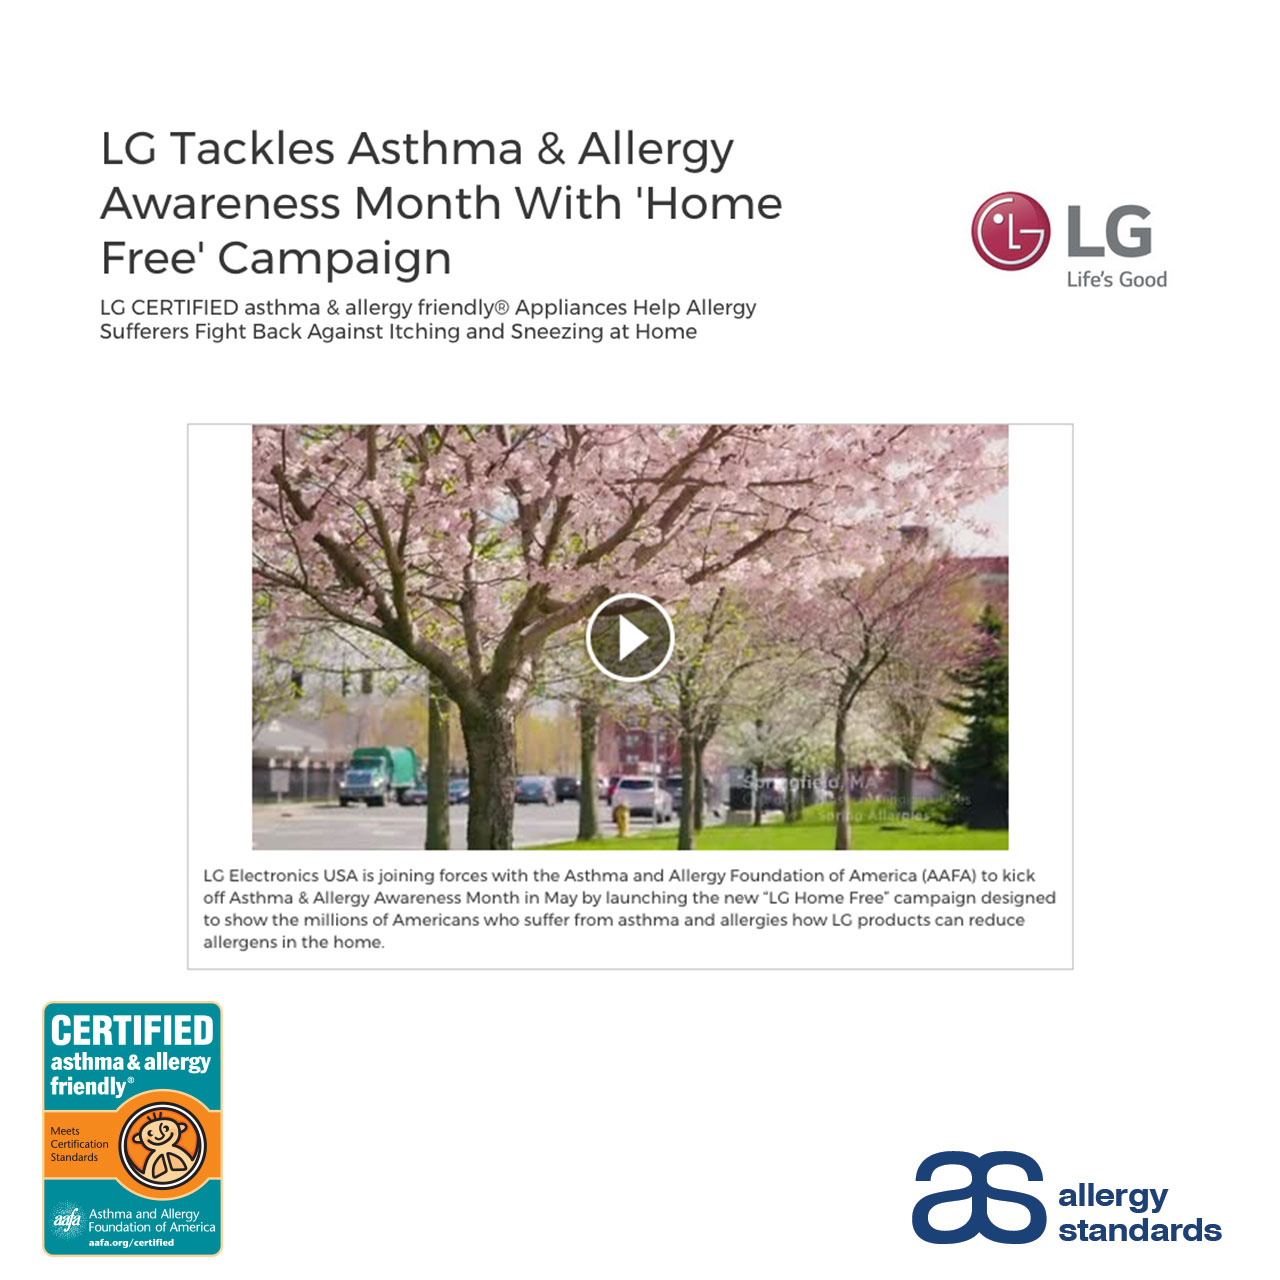 LG Home Free Campaign Allergy Standards